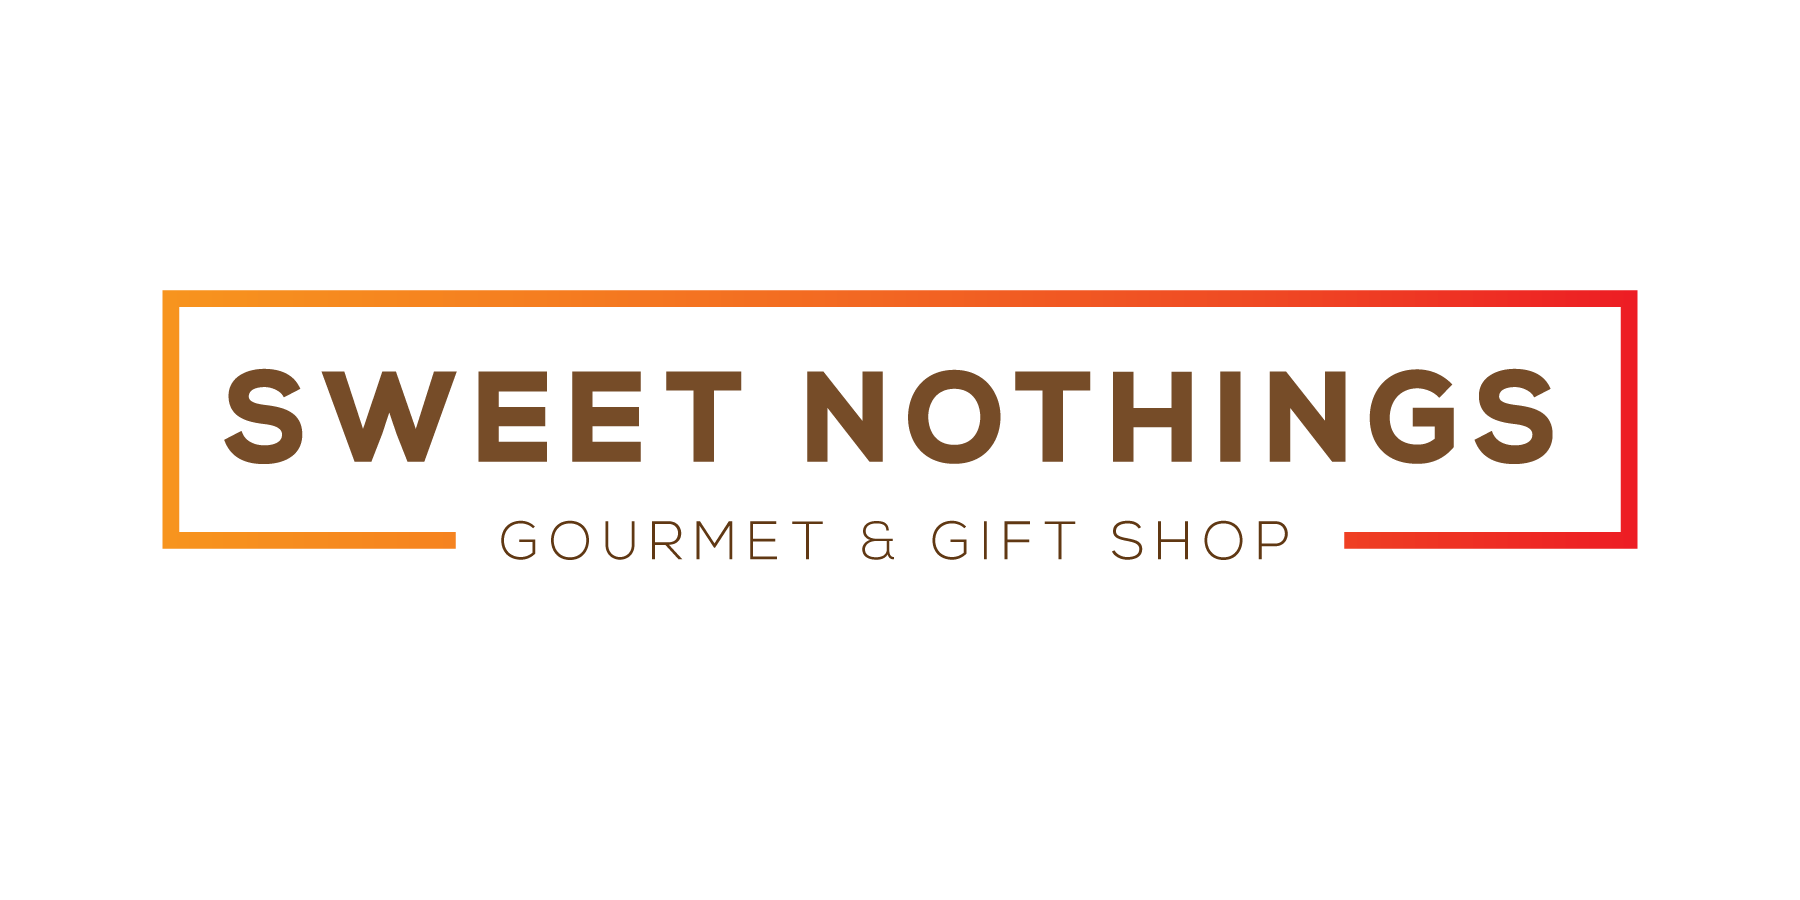 Sweet Nothings Gourmet & Gift Shop